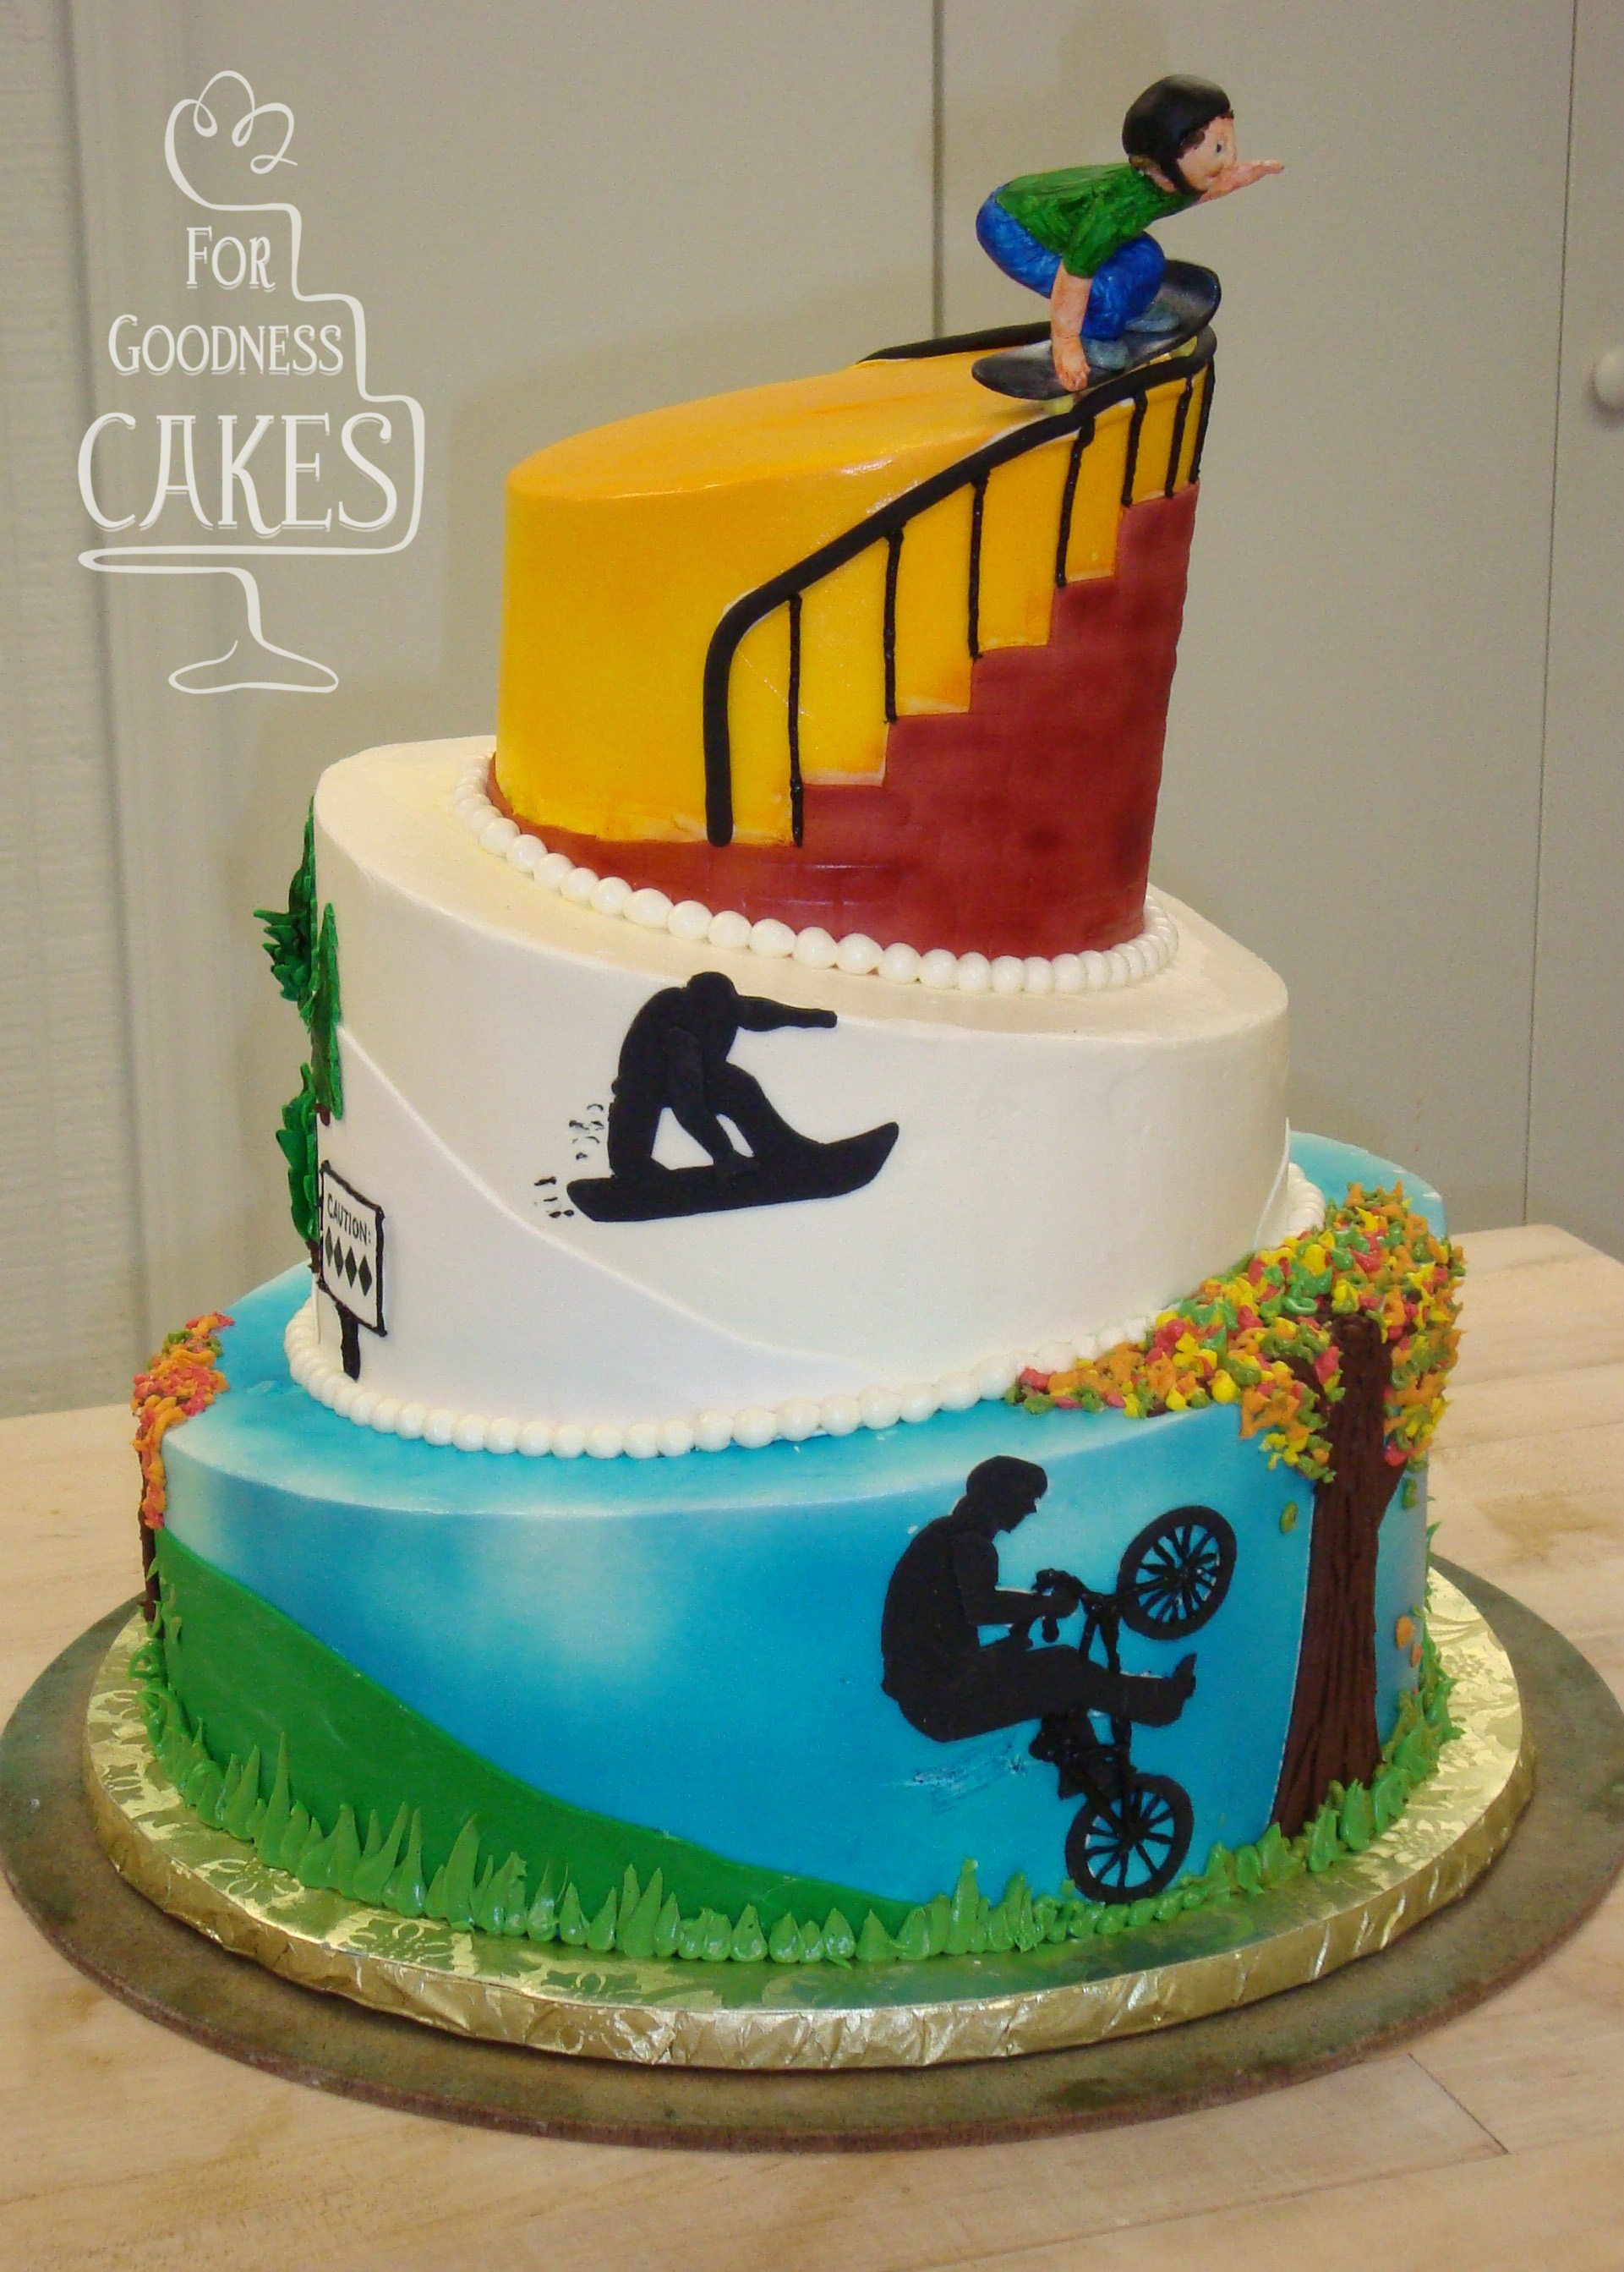 Extreme Sports Cake copy For Goodness Cakes of Charlotte